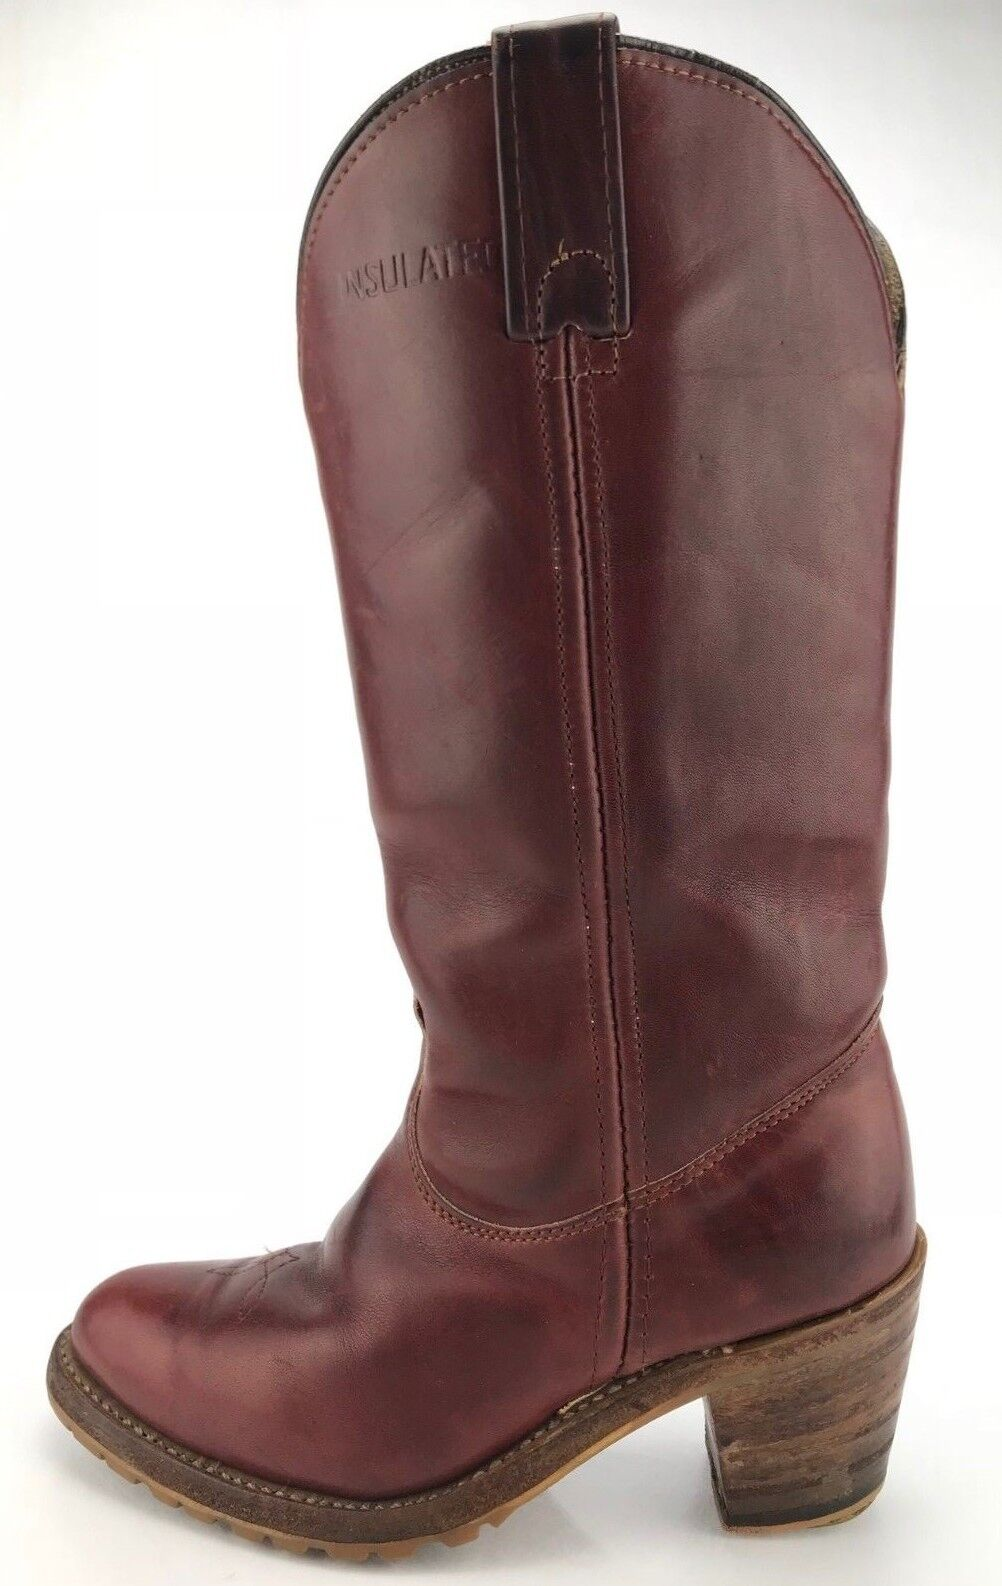 Double H Western Boots Burgundy Leather Casual Cowgirl Cowboy shoes Womens 5.5 B